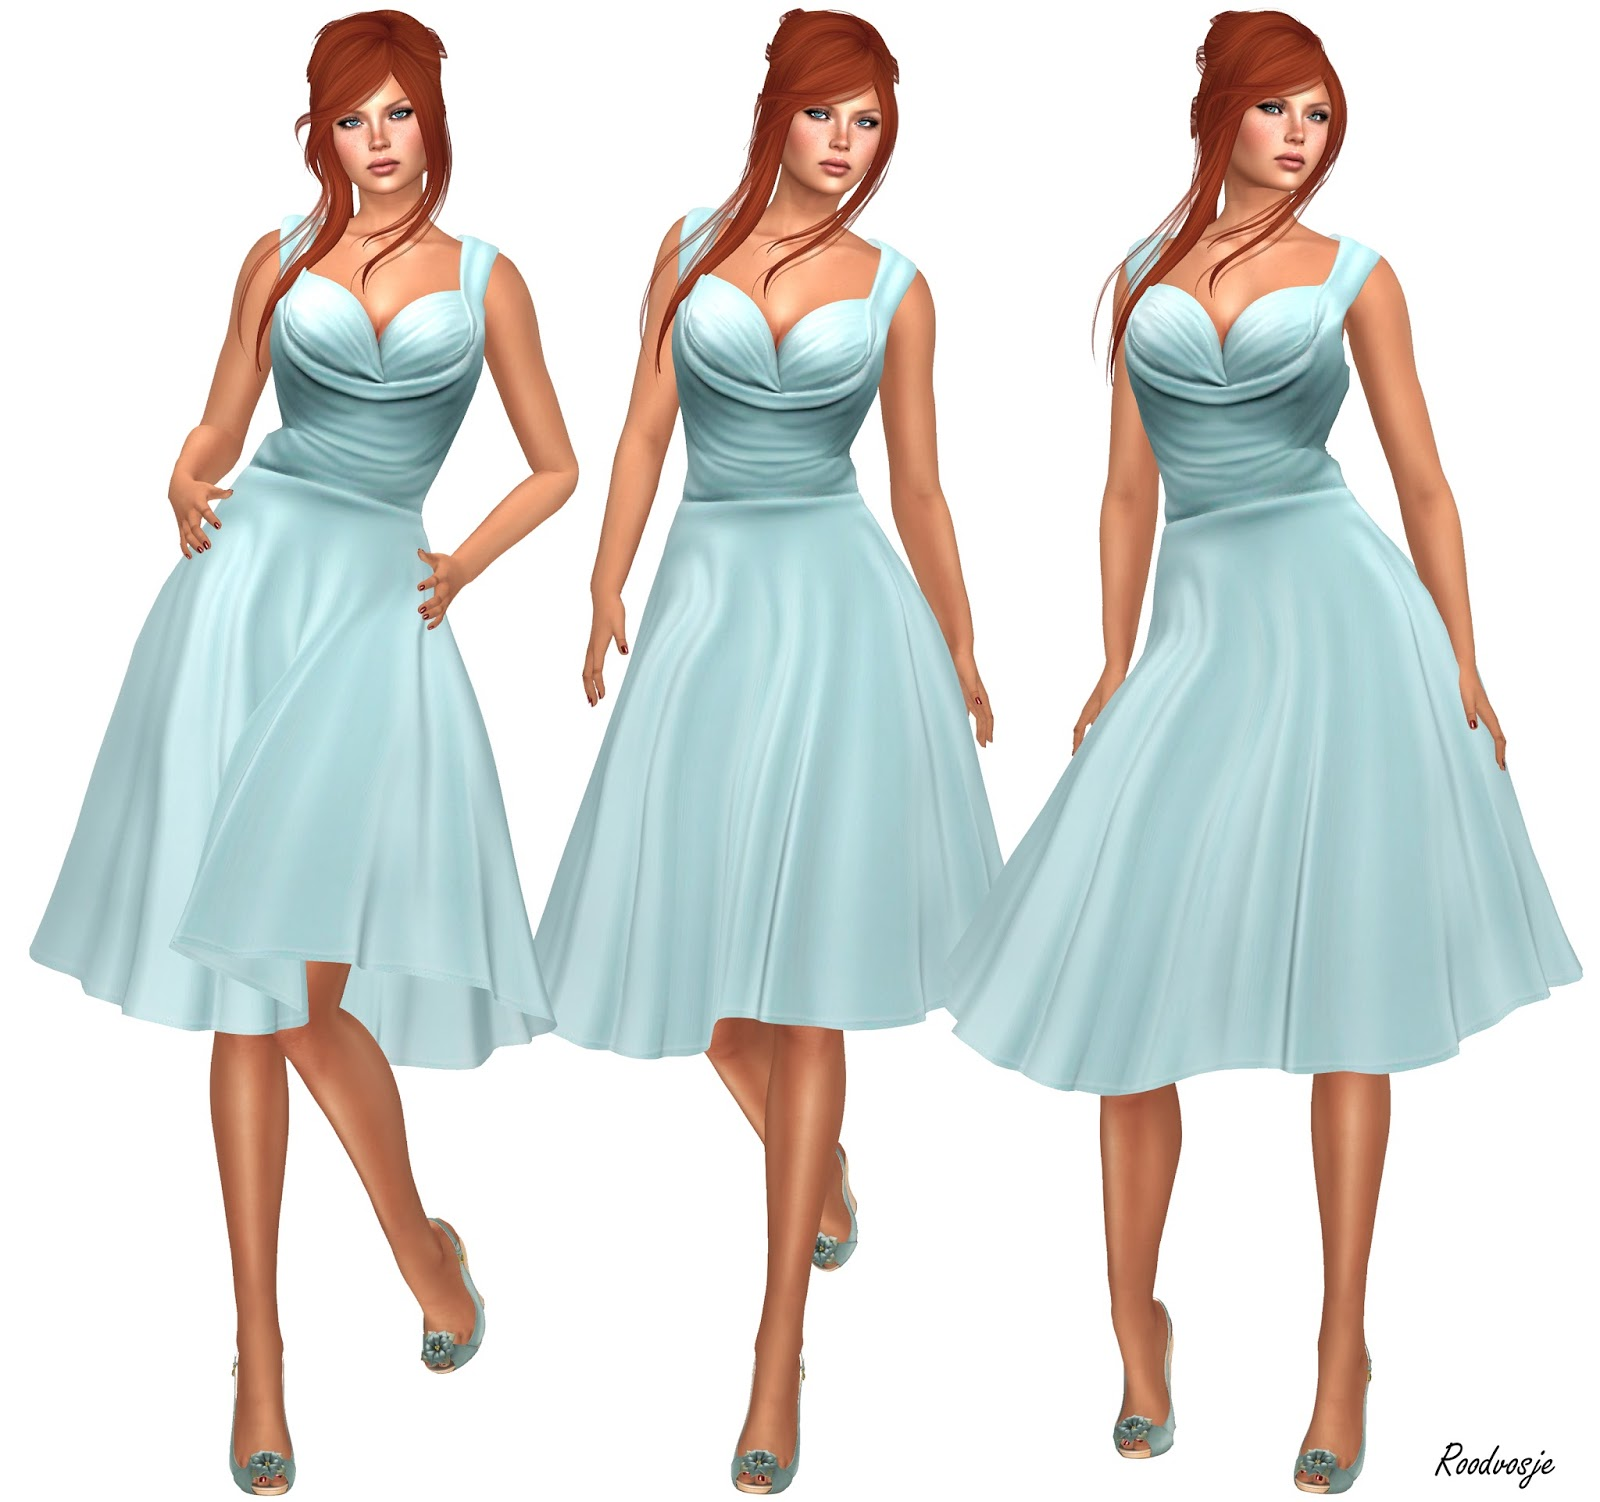 Enchanting Hen Party Dress Themes Ensign - All Wedding Dresses ...